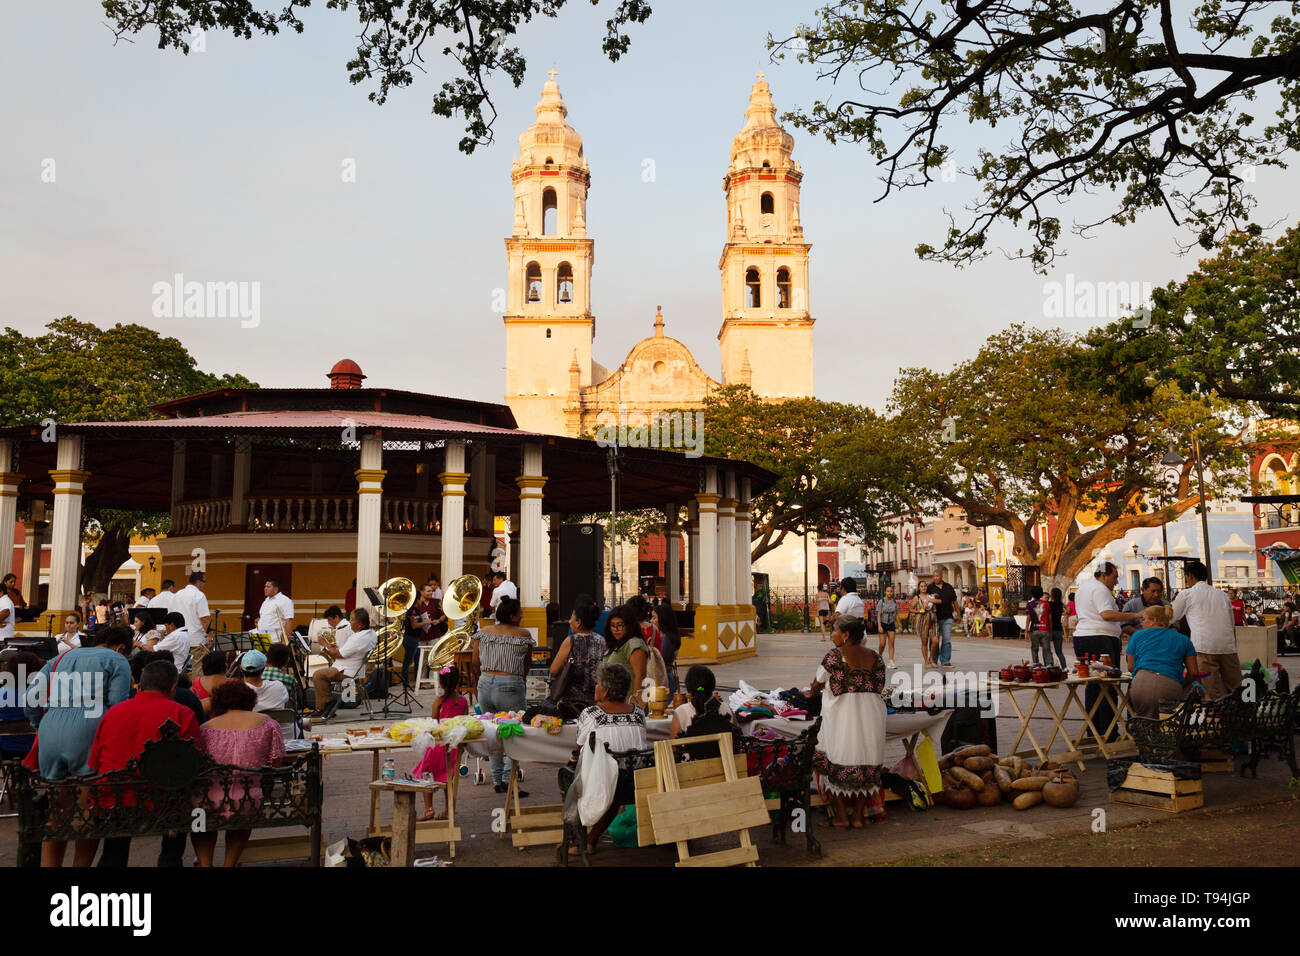 campeche-mexico-cathedral-and-people-in-the-central-square-campeche-old-town-unesco-world-heritage-site-yucatan-mexico-latin-america-T94JGP.jpg